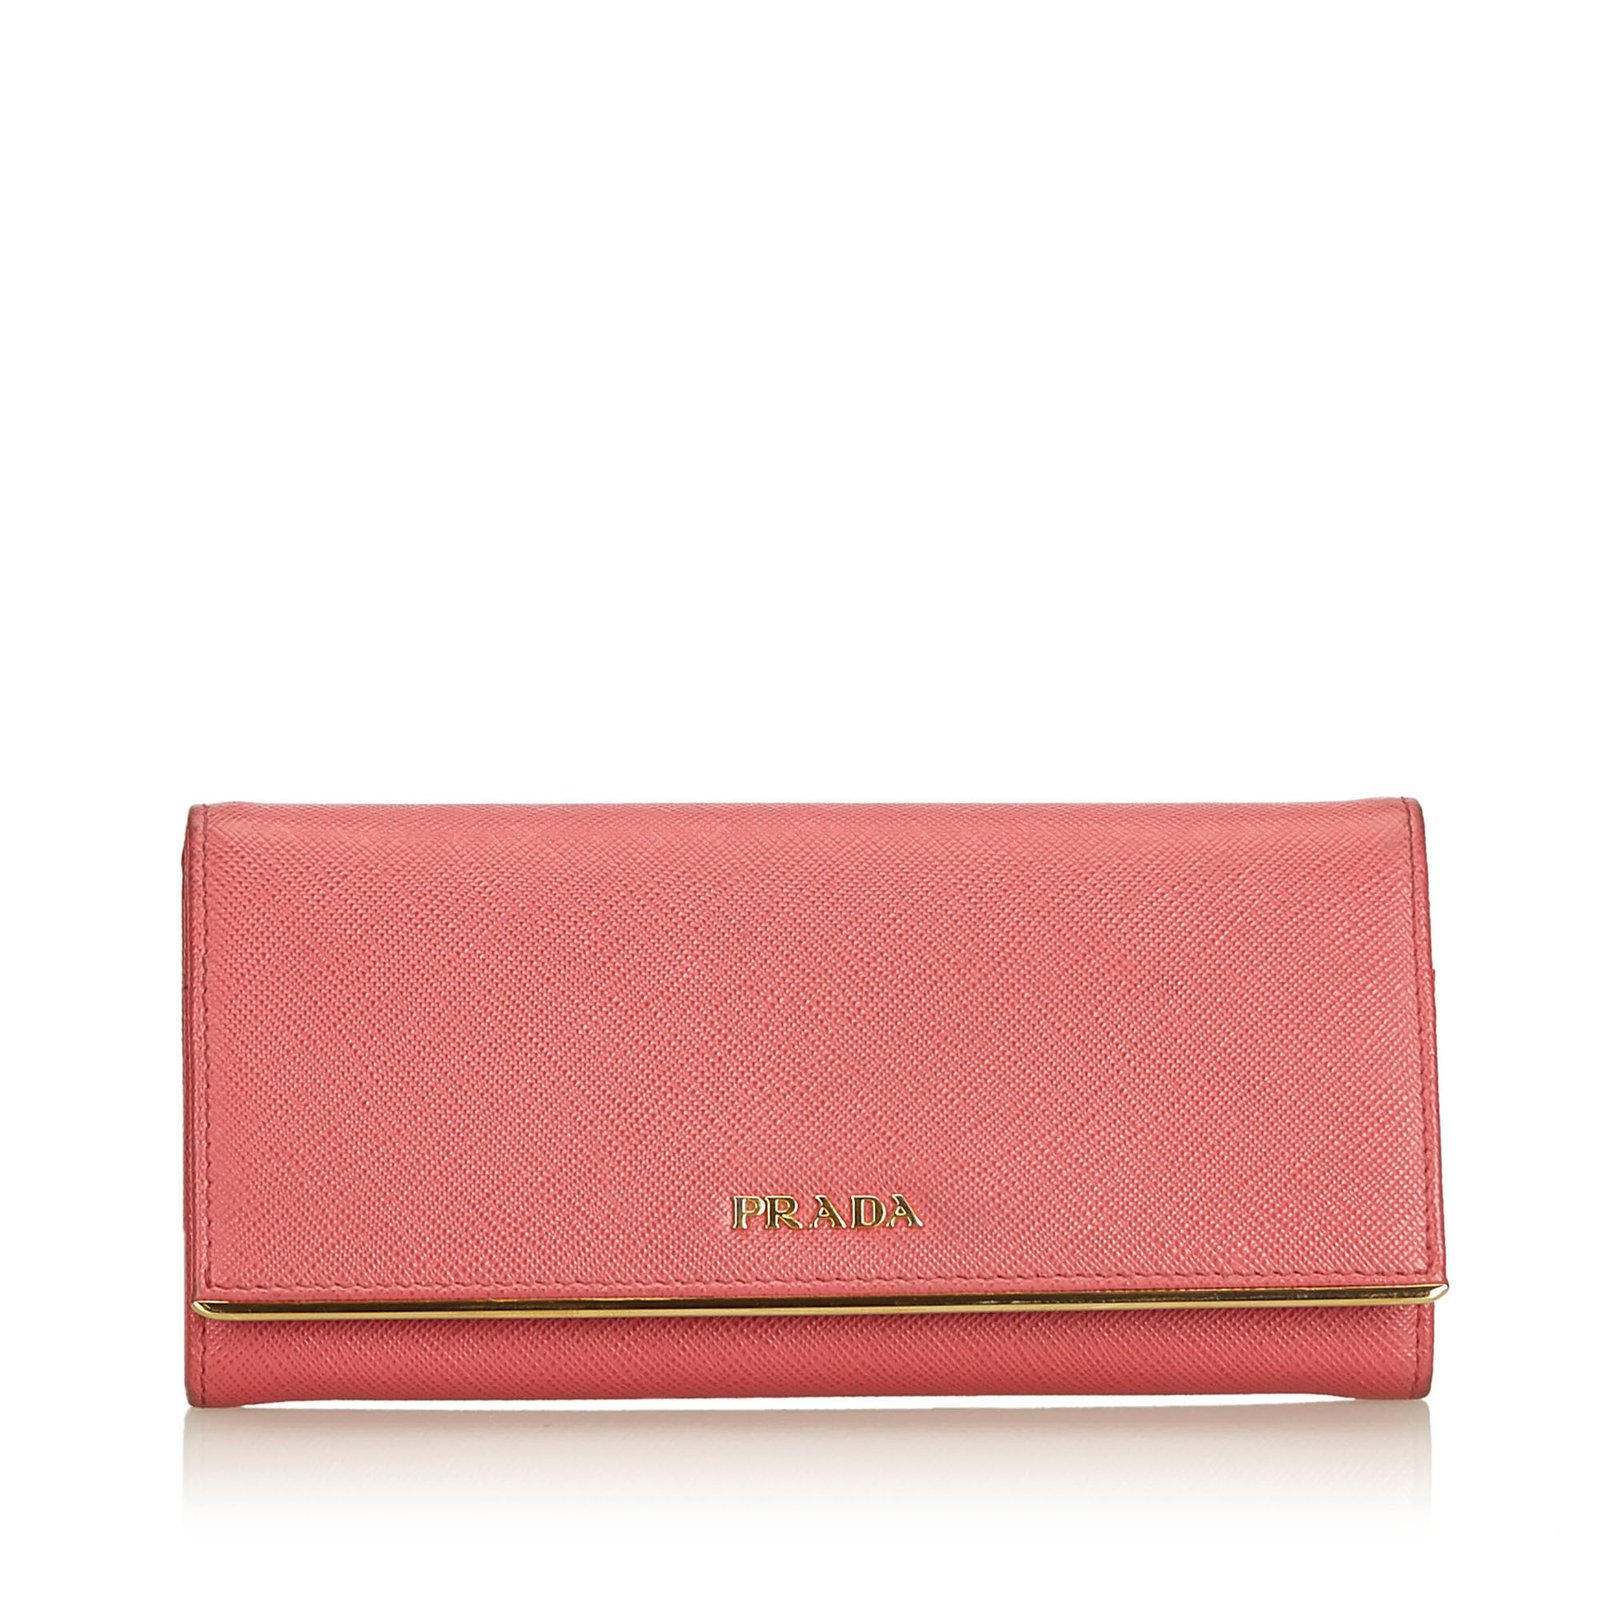 5d55b9832f8104 Prada Leather Long Wallet Purses, wallets, cases Leather,Other Pink  ref.90793